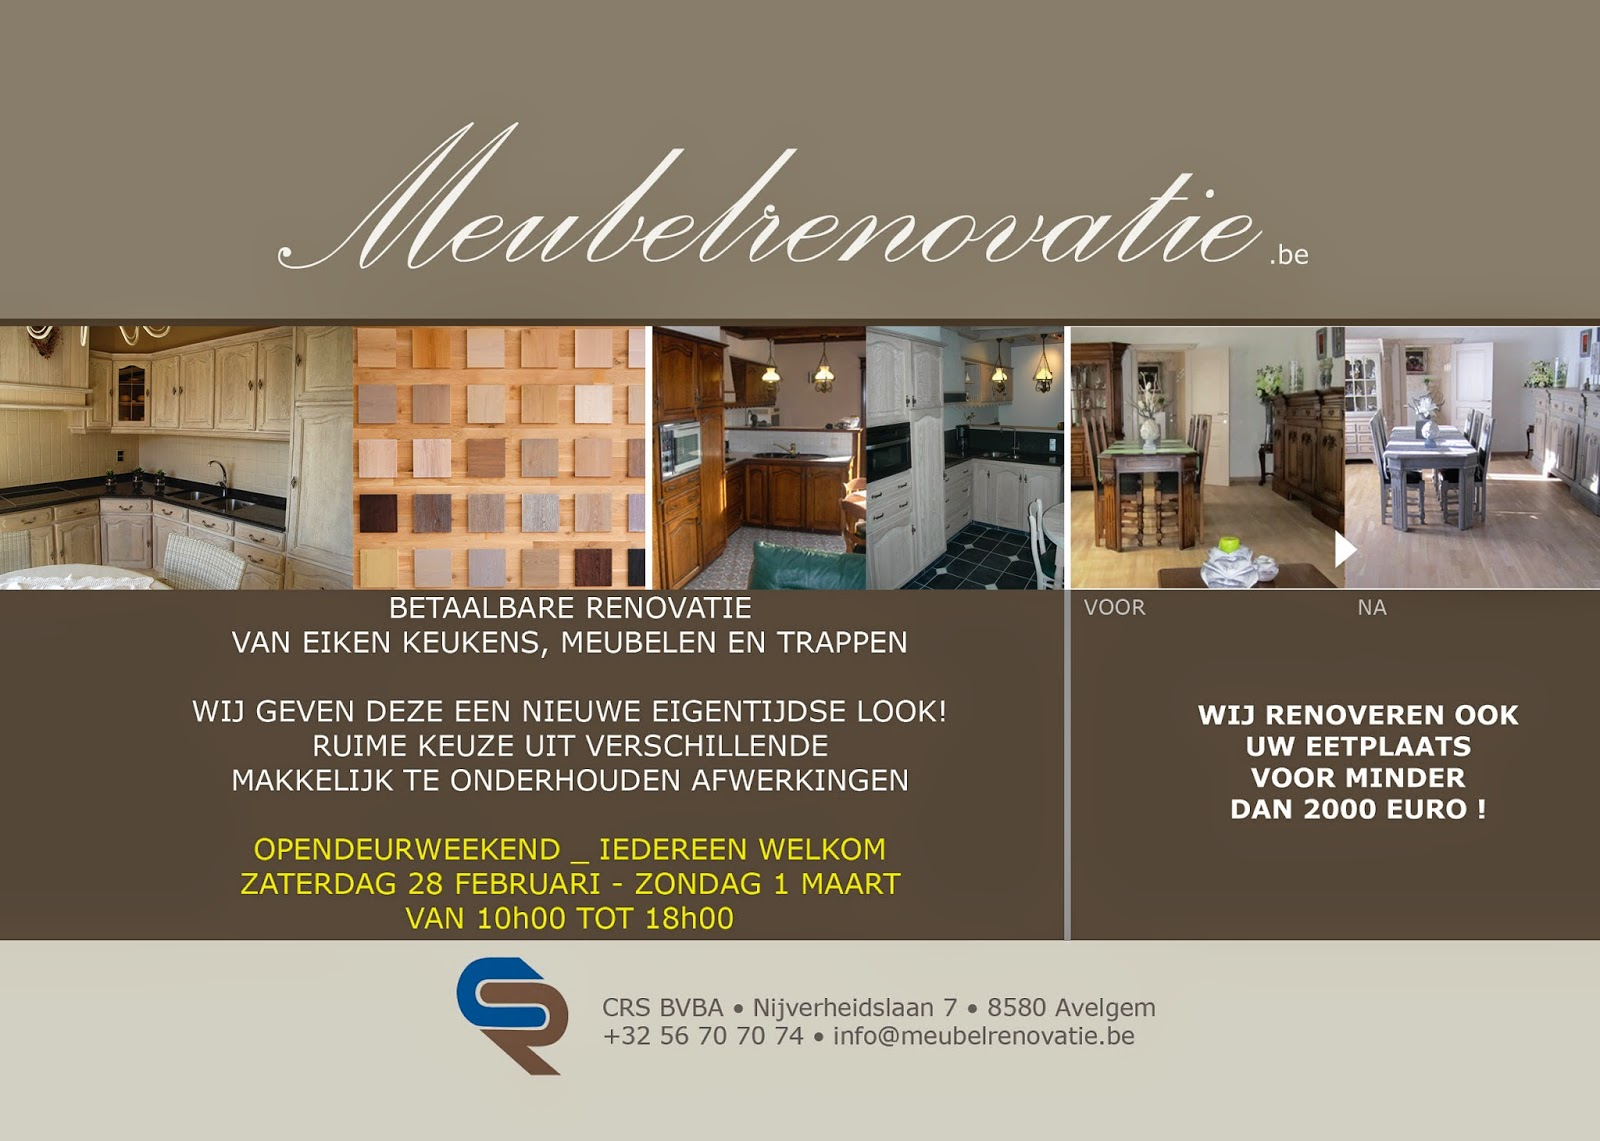 Meubelrenovatie.be opendeurdagen